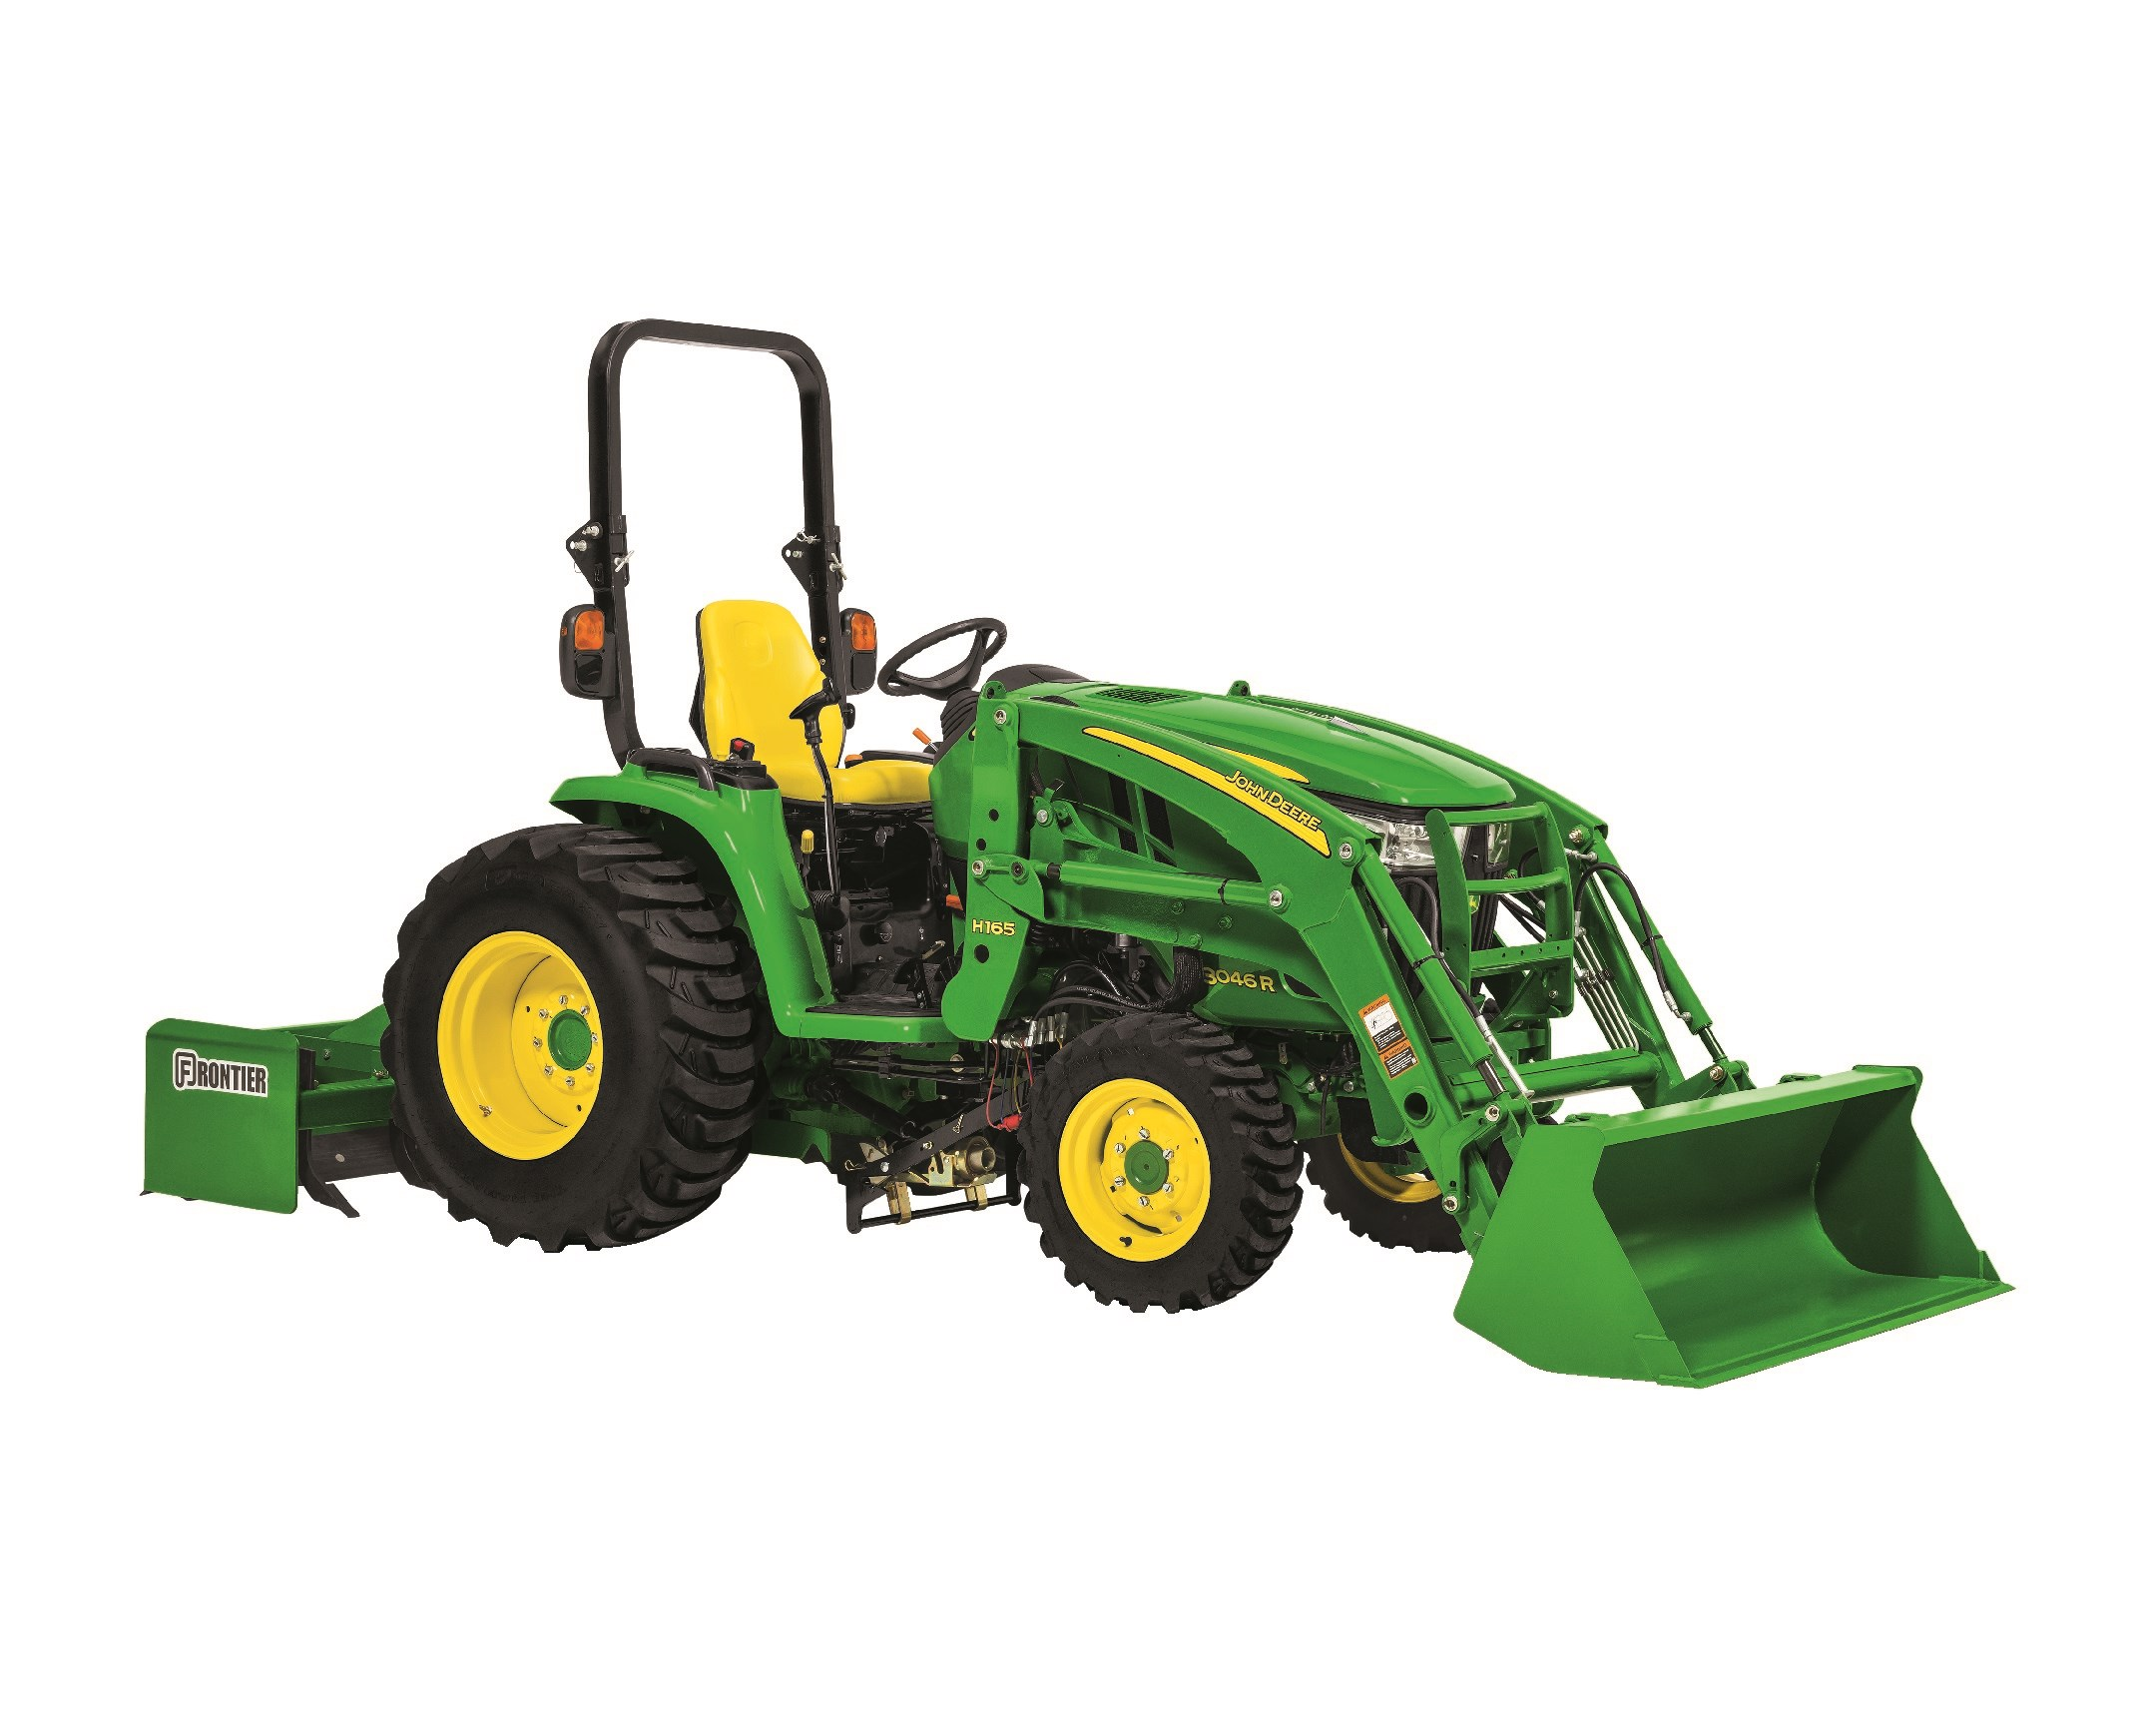 Compact Tractors Product : Product wilmington lawn leisure